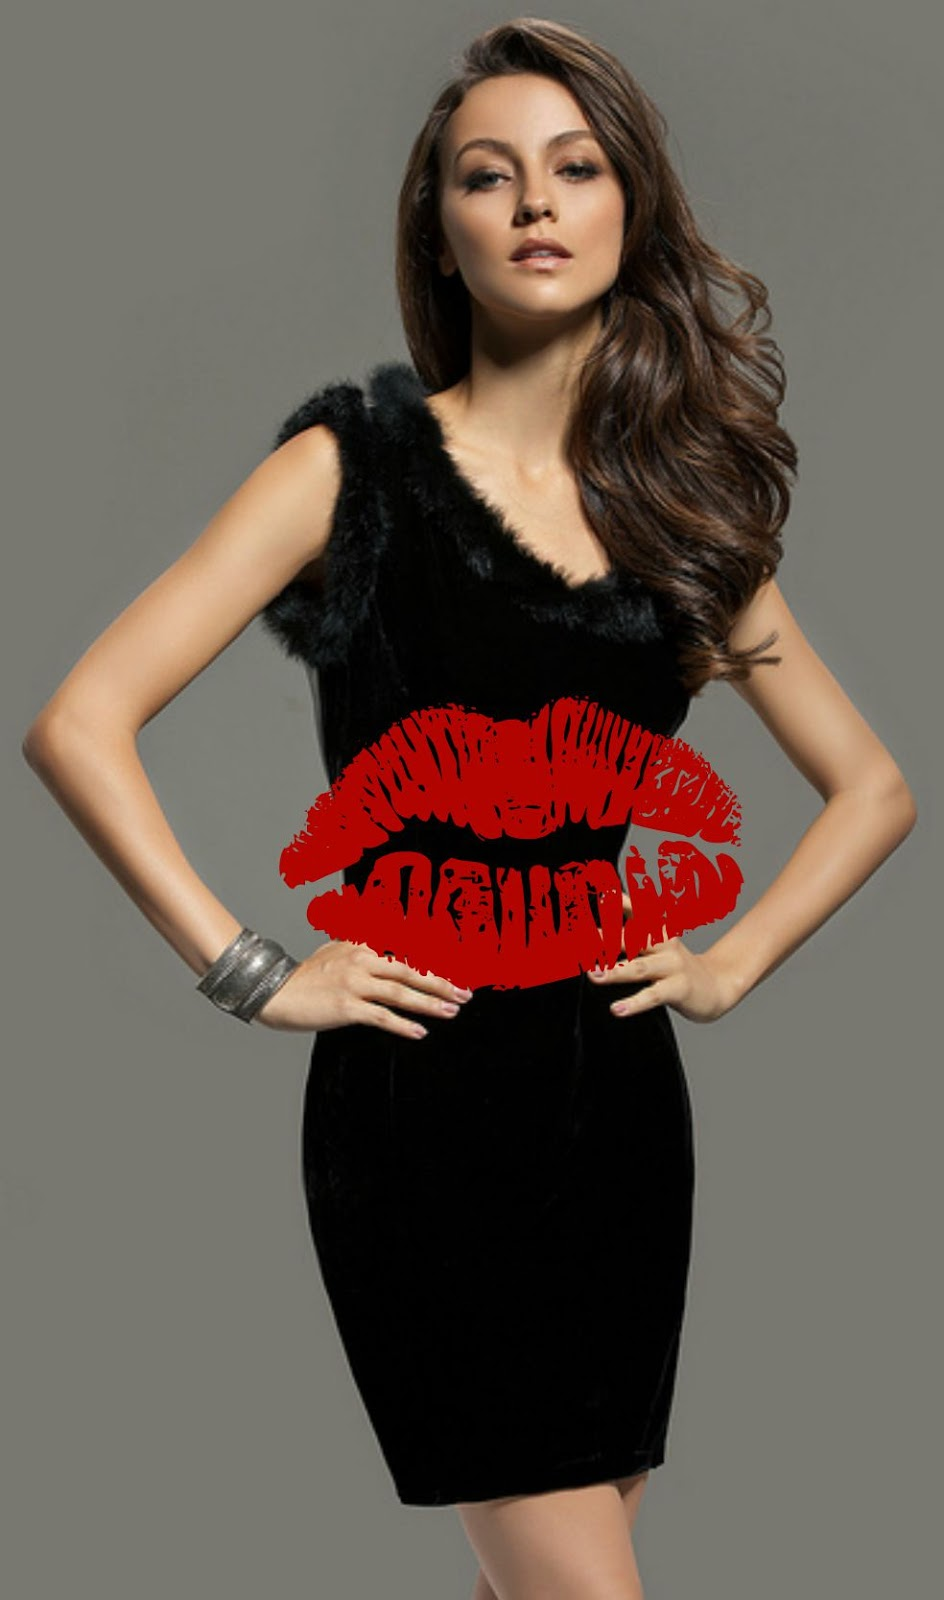 Black dress lipstick - The Black Is A Color Set And Then Can Be Matched Lipsticks Bold Colors Such As Red But Pink And Shocking Pink